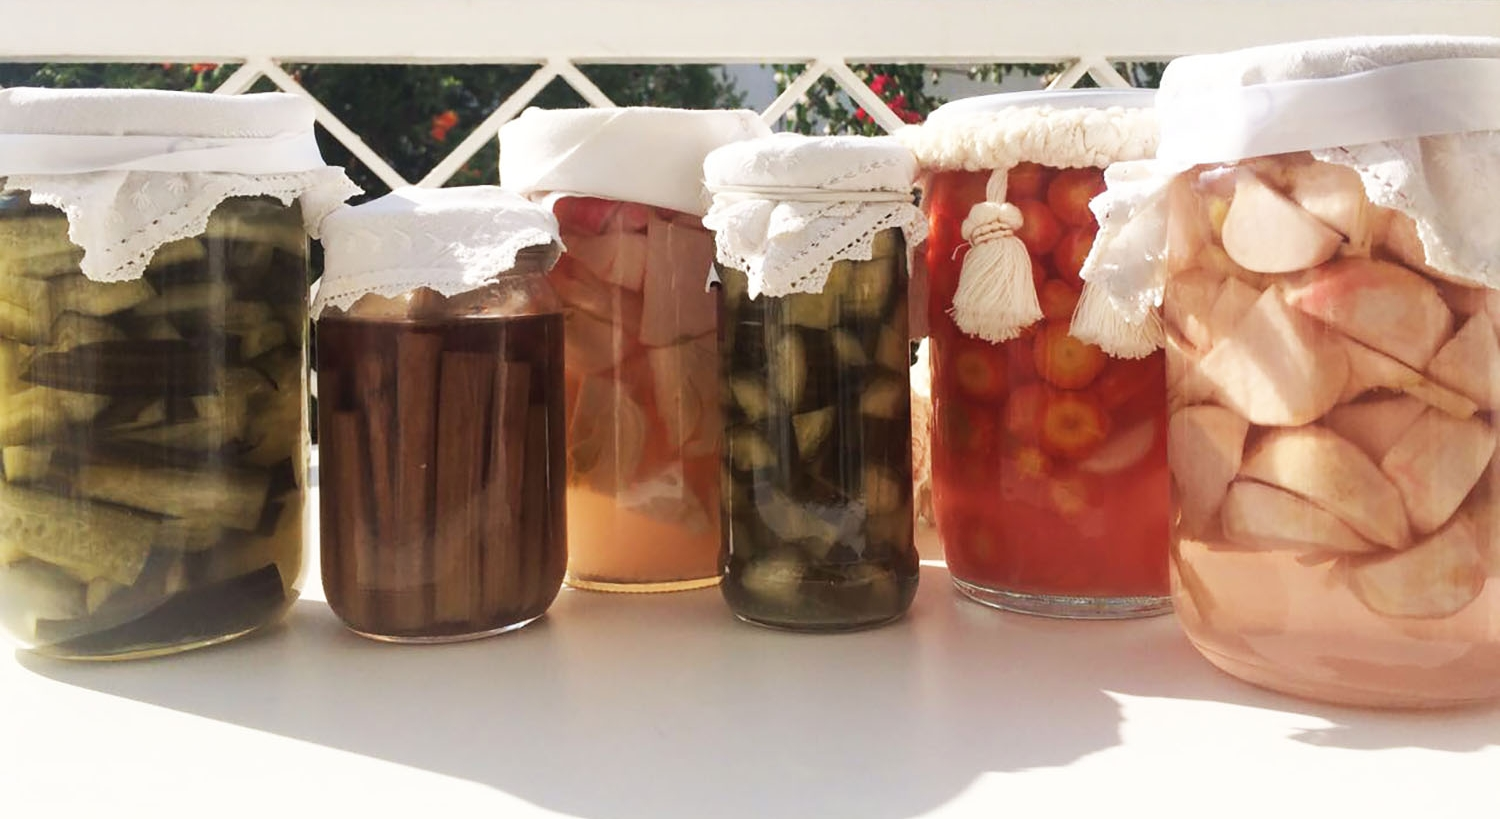 Homemade fermented organic veggies (cucumber, cardoon, fennel, zucchini, carrot, turnip)